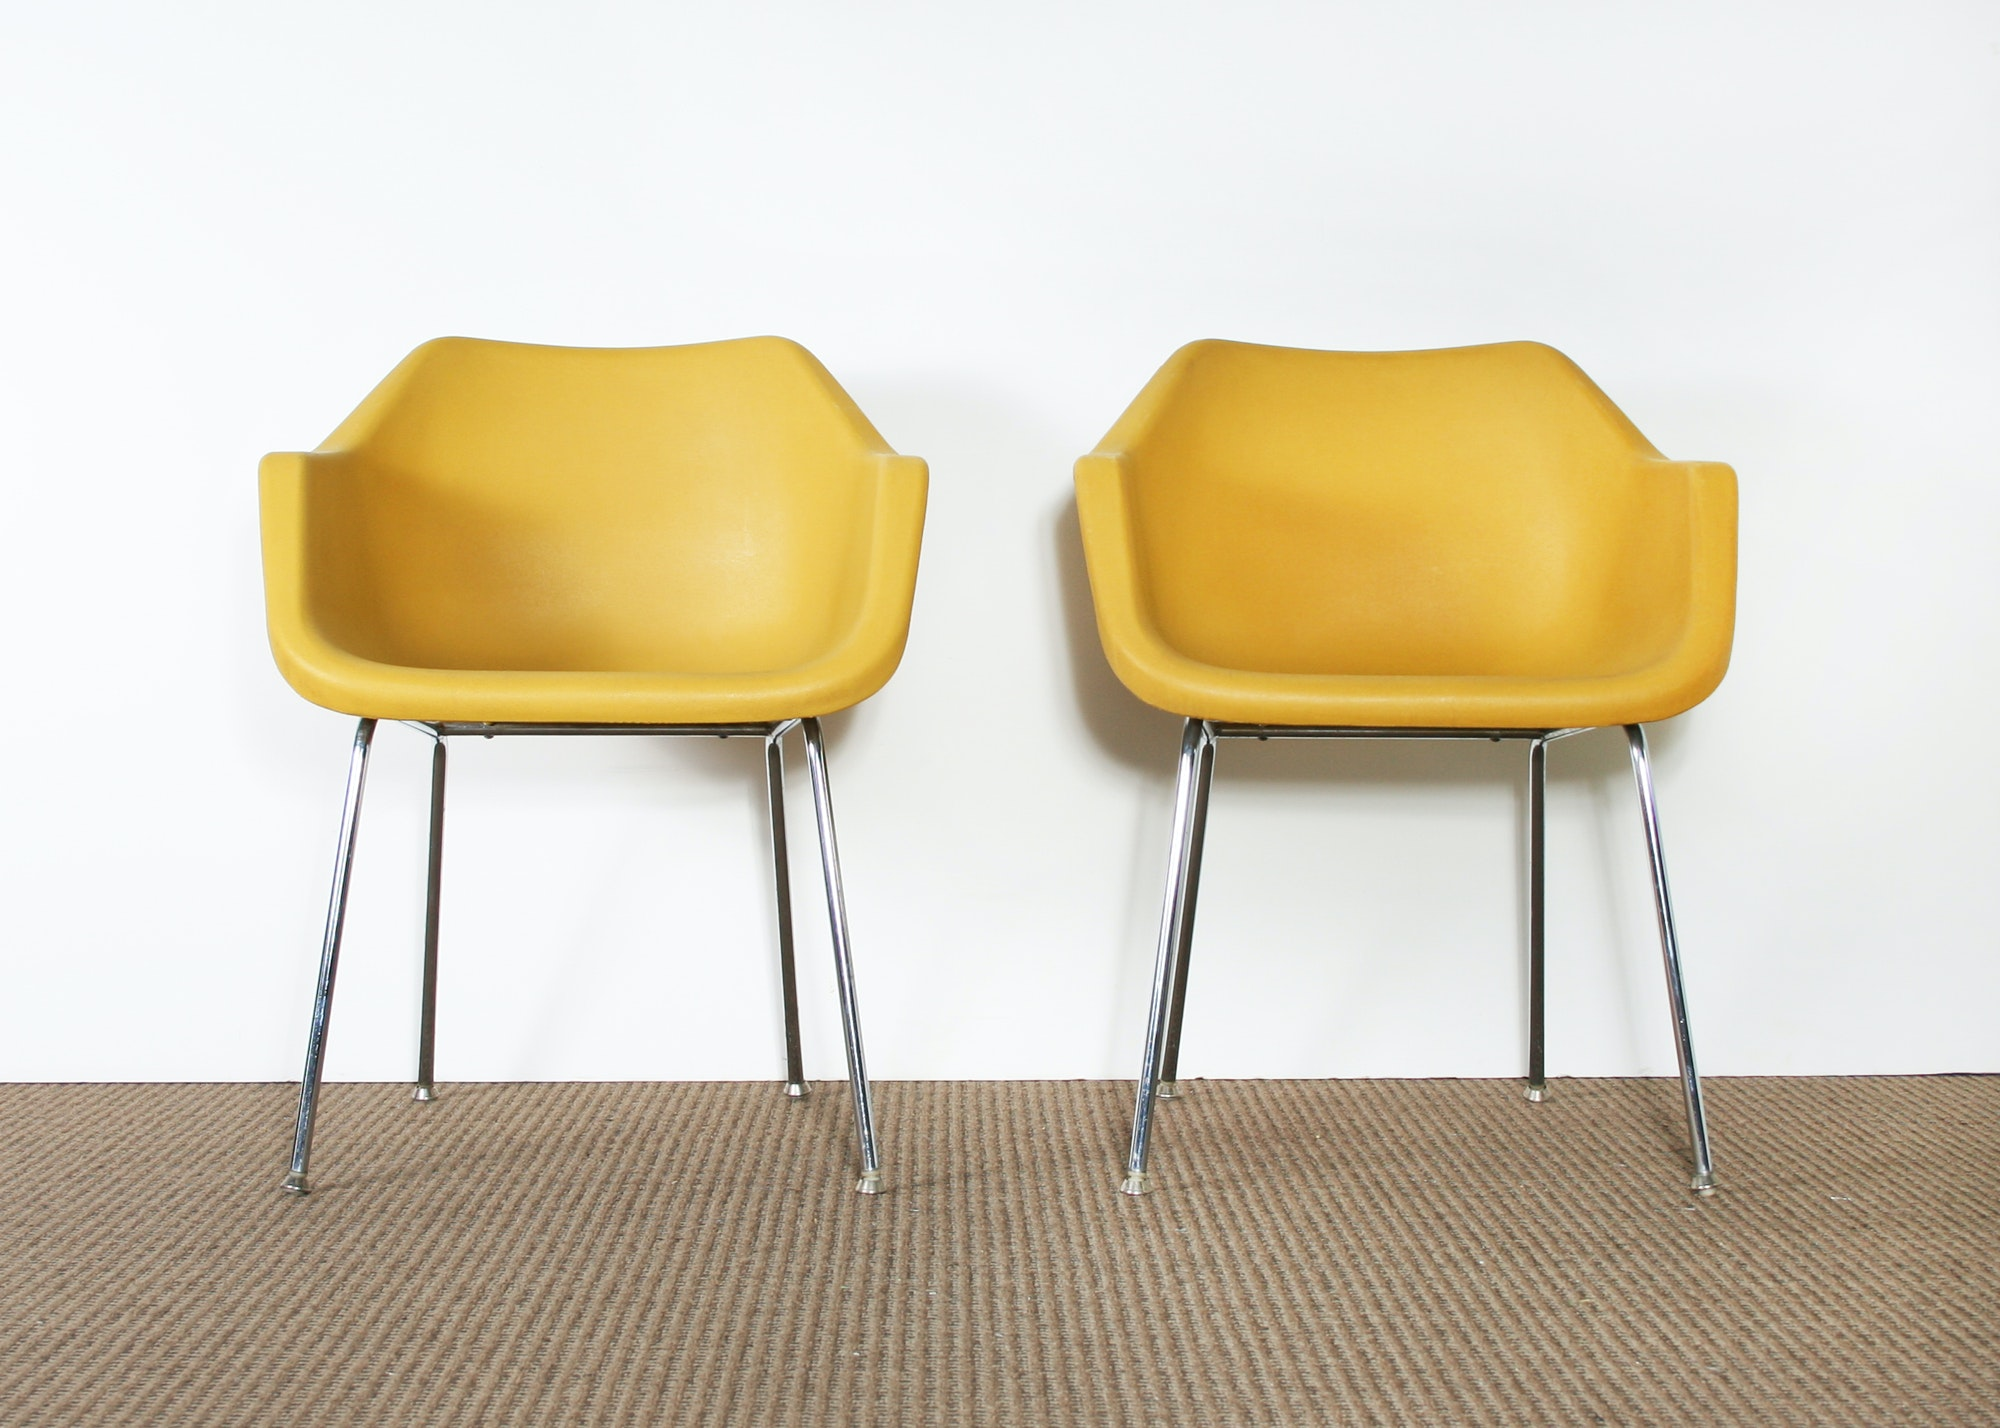 Exceptionnel Set Of Two Mid Century Modern Yellow John Stuart Chairs ...